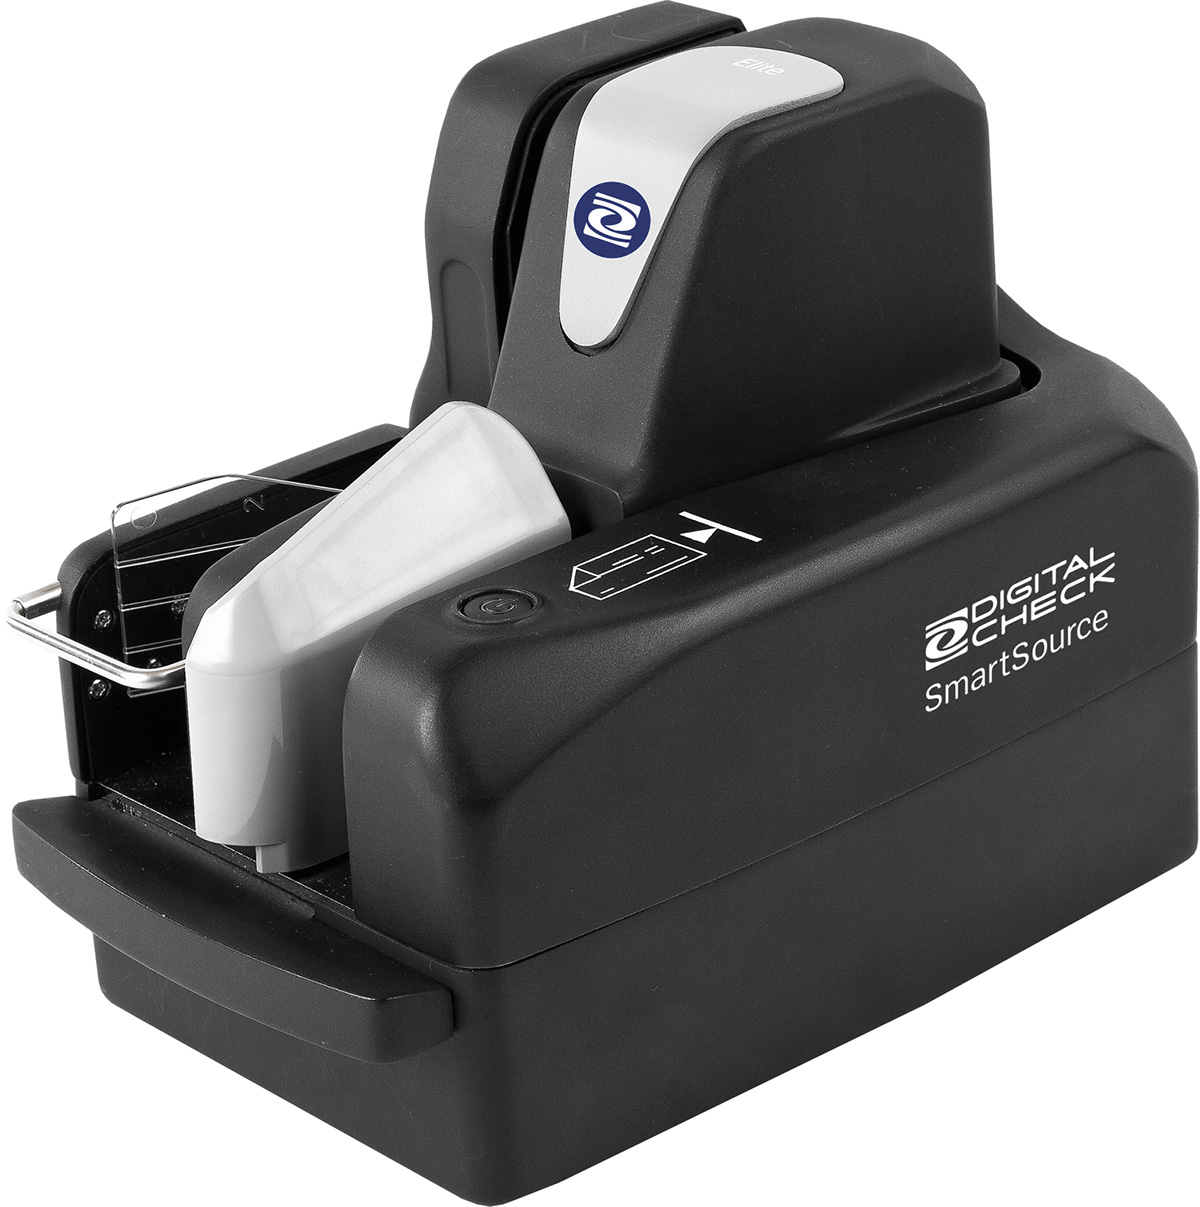 SmartSource<sup><small>®</small></sup> Professional Elite &#8211; Teller and RDC Scanner